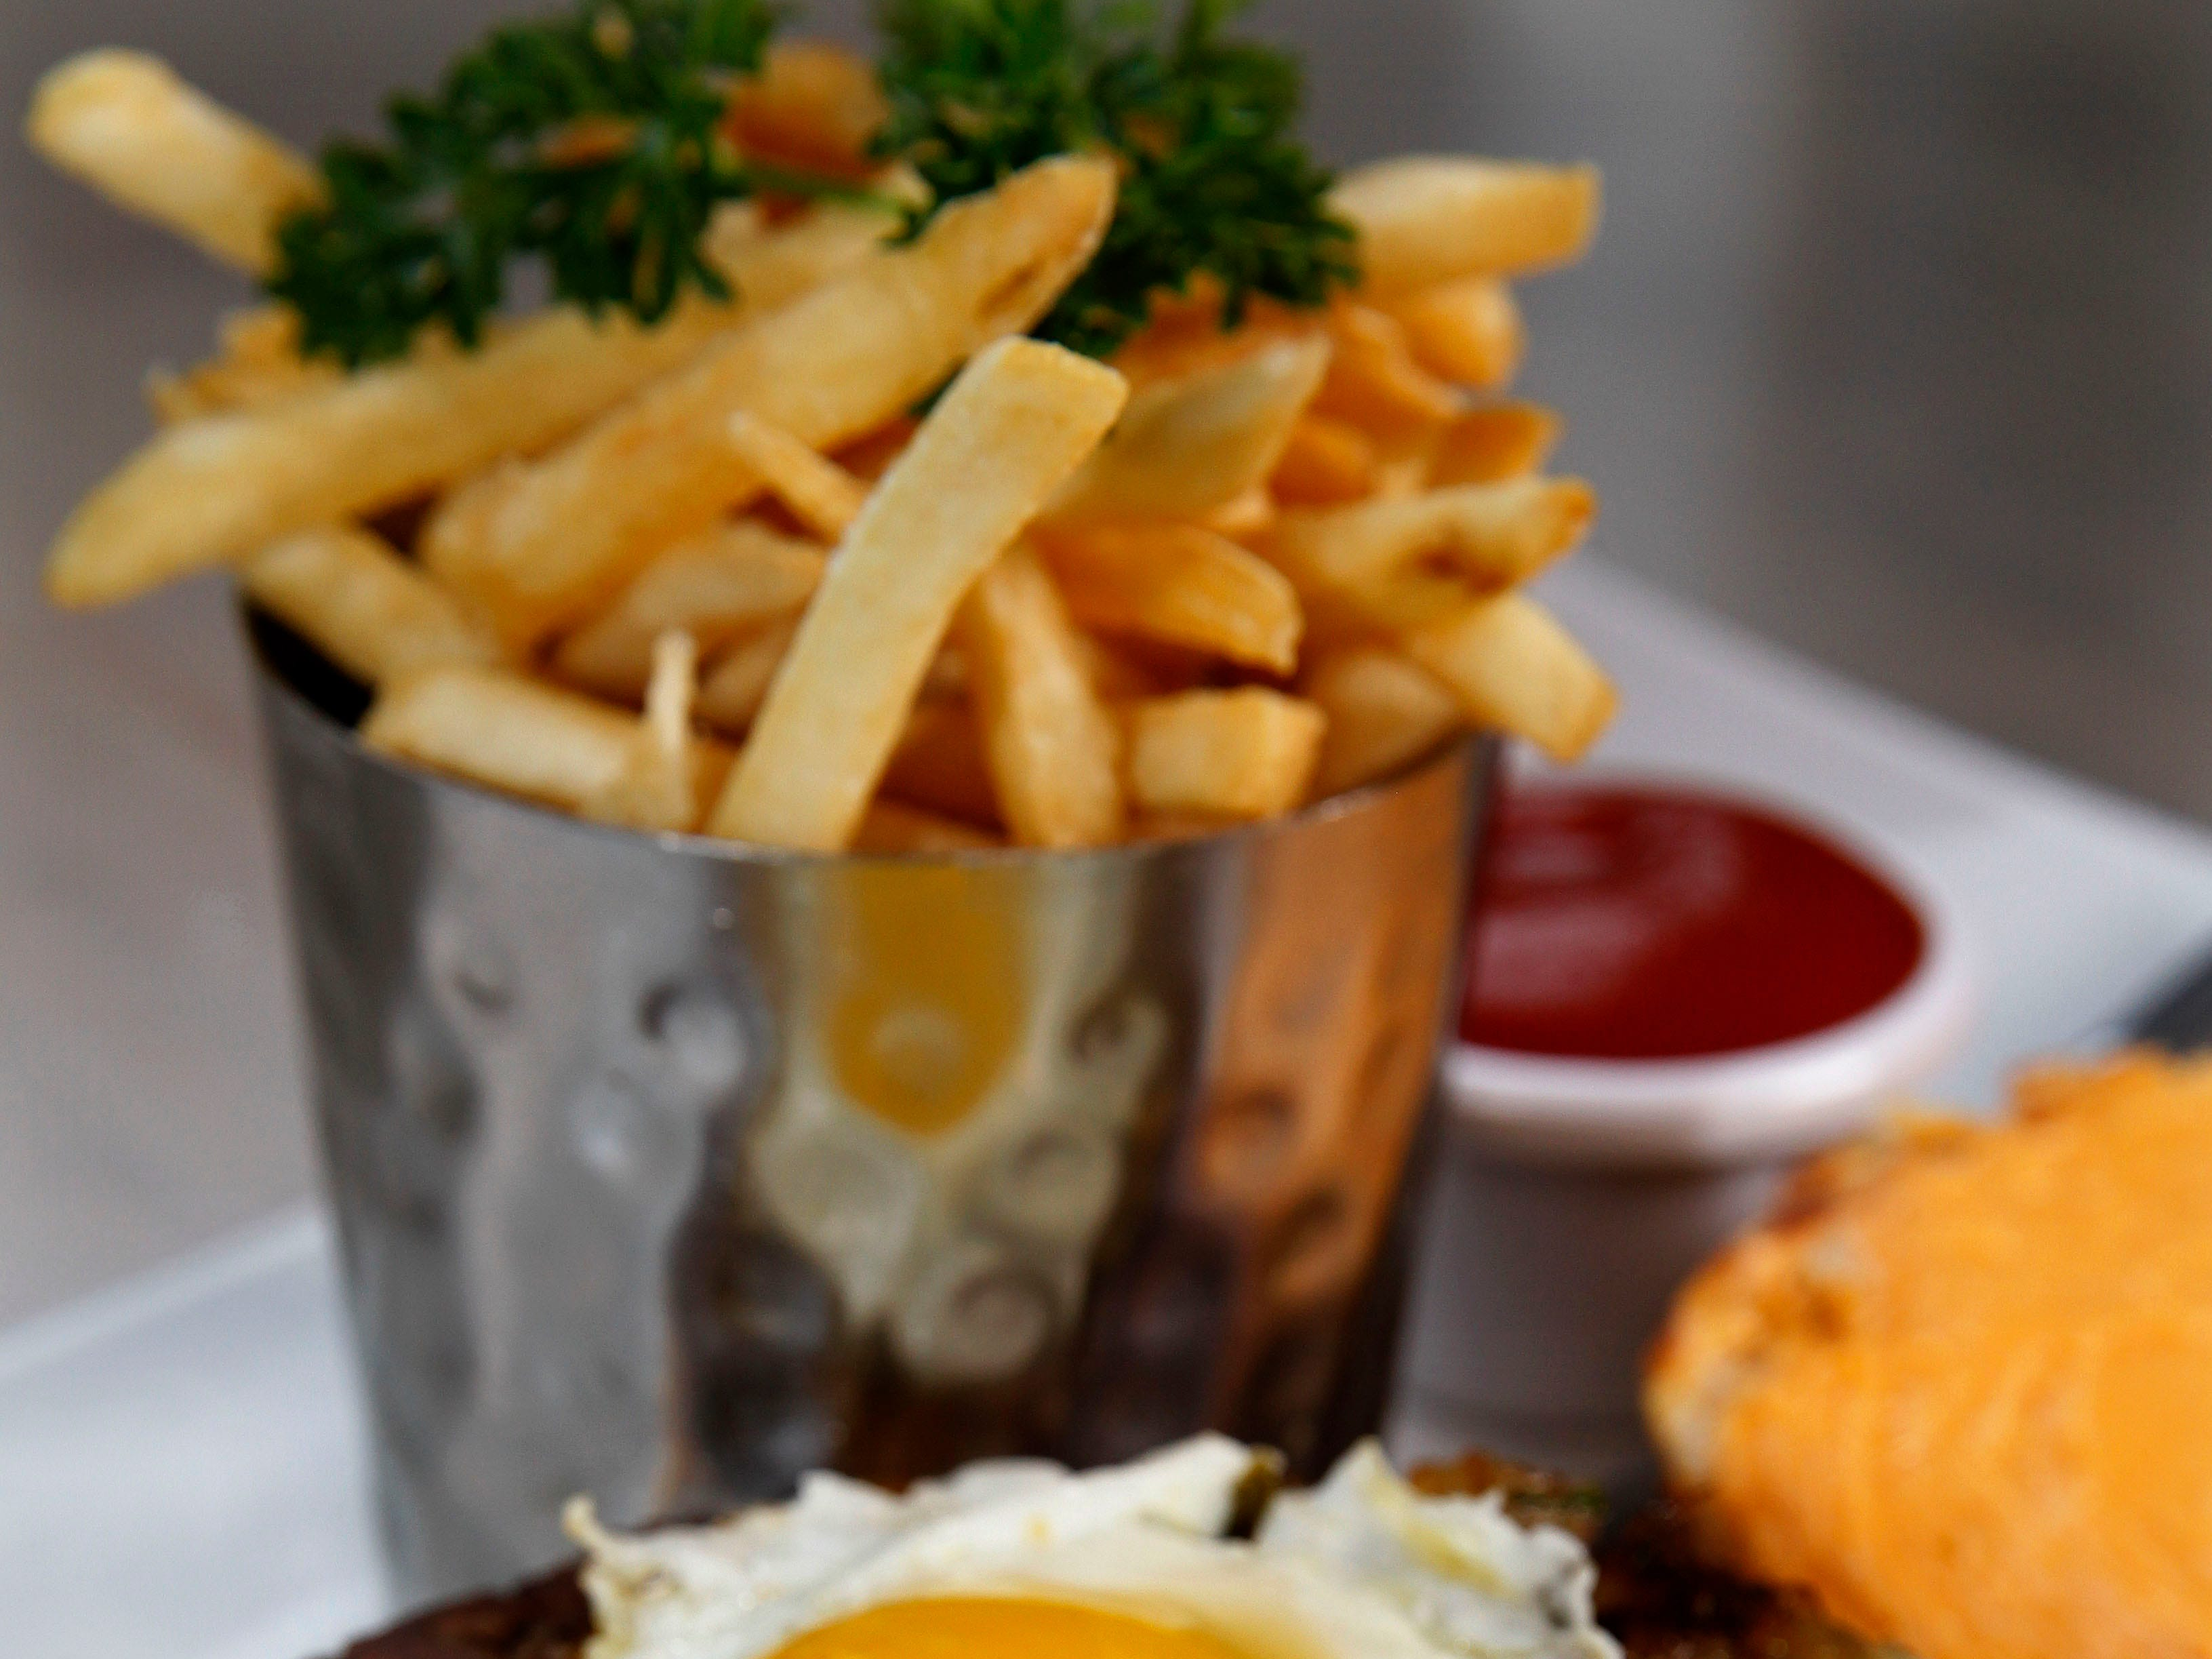 Sweet Diner's breakfast burger is a 1/2-pound Angus beef patty with slices of ham, caramelized onion-jalapeno mix, Merkts cheese and a fried egg, served with fries.